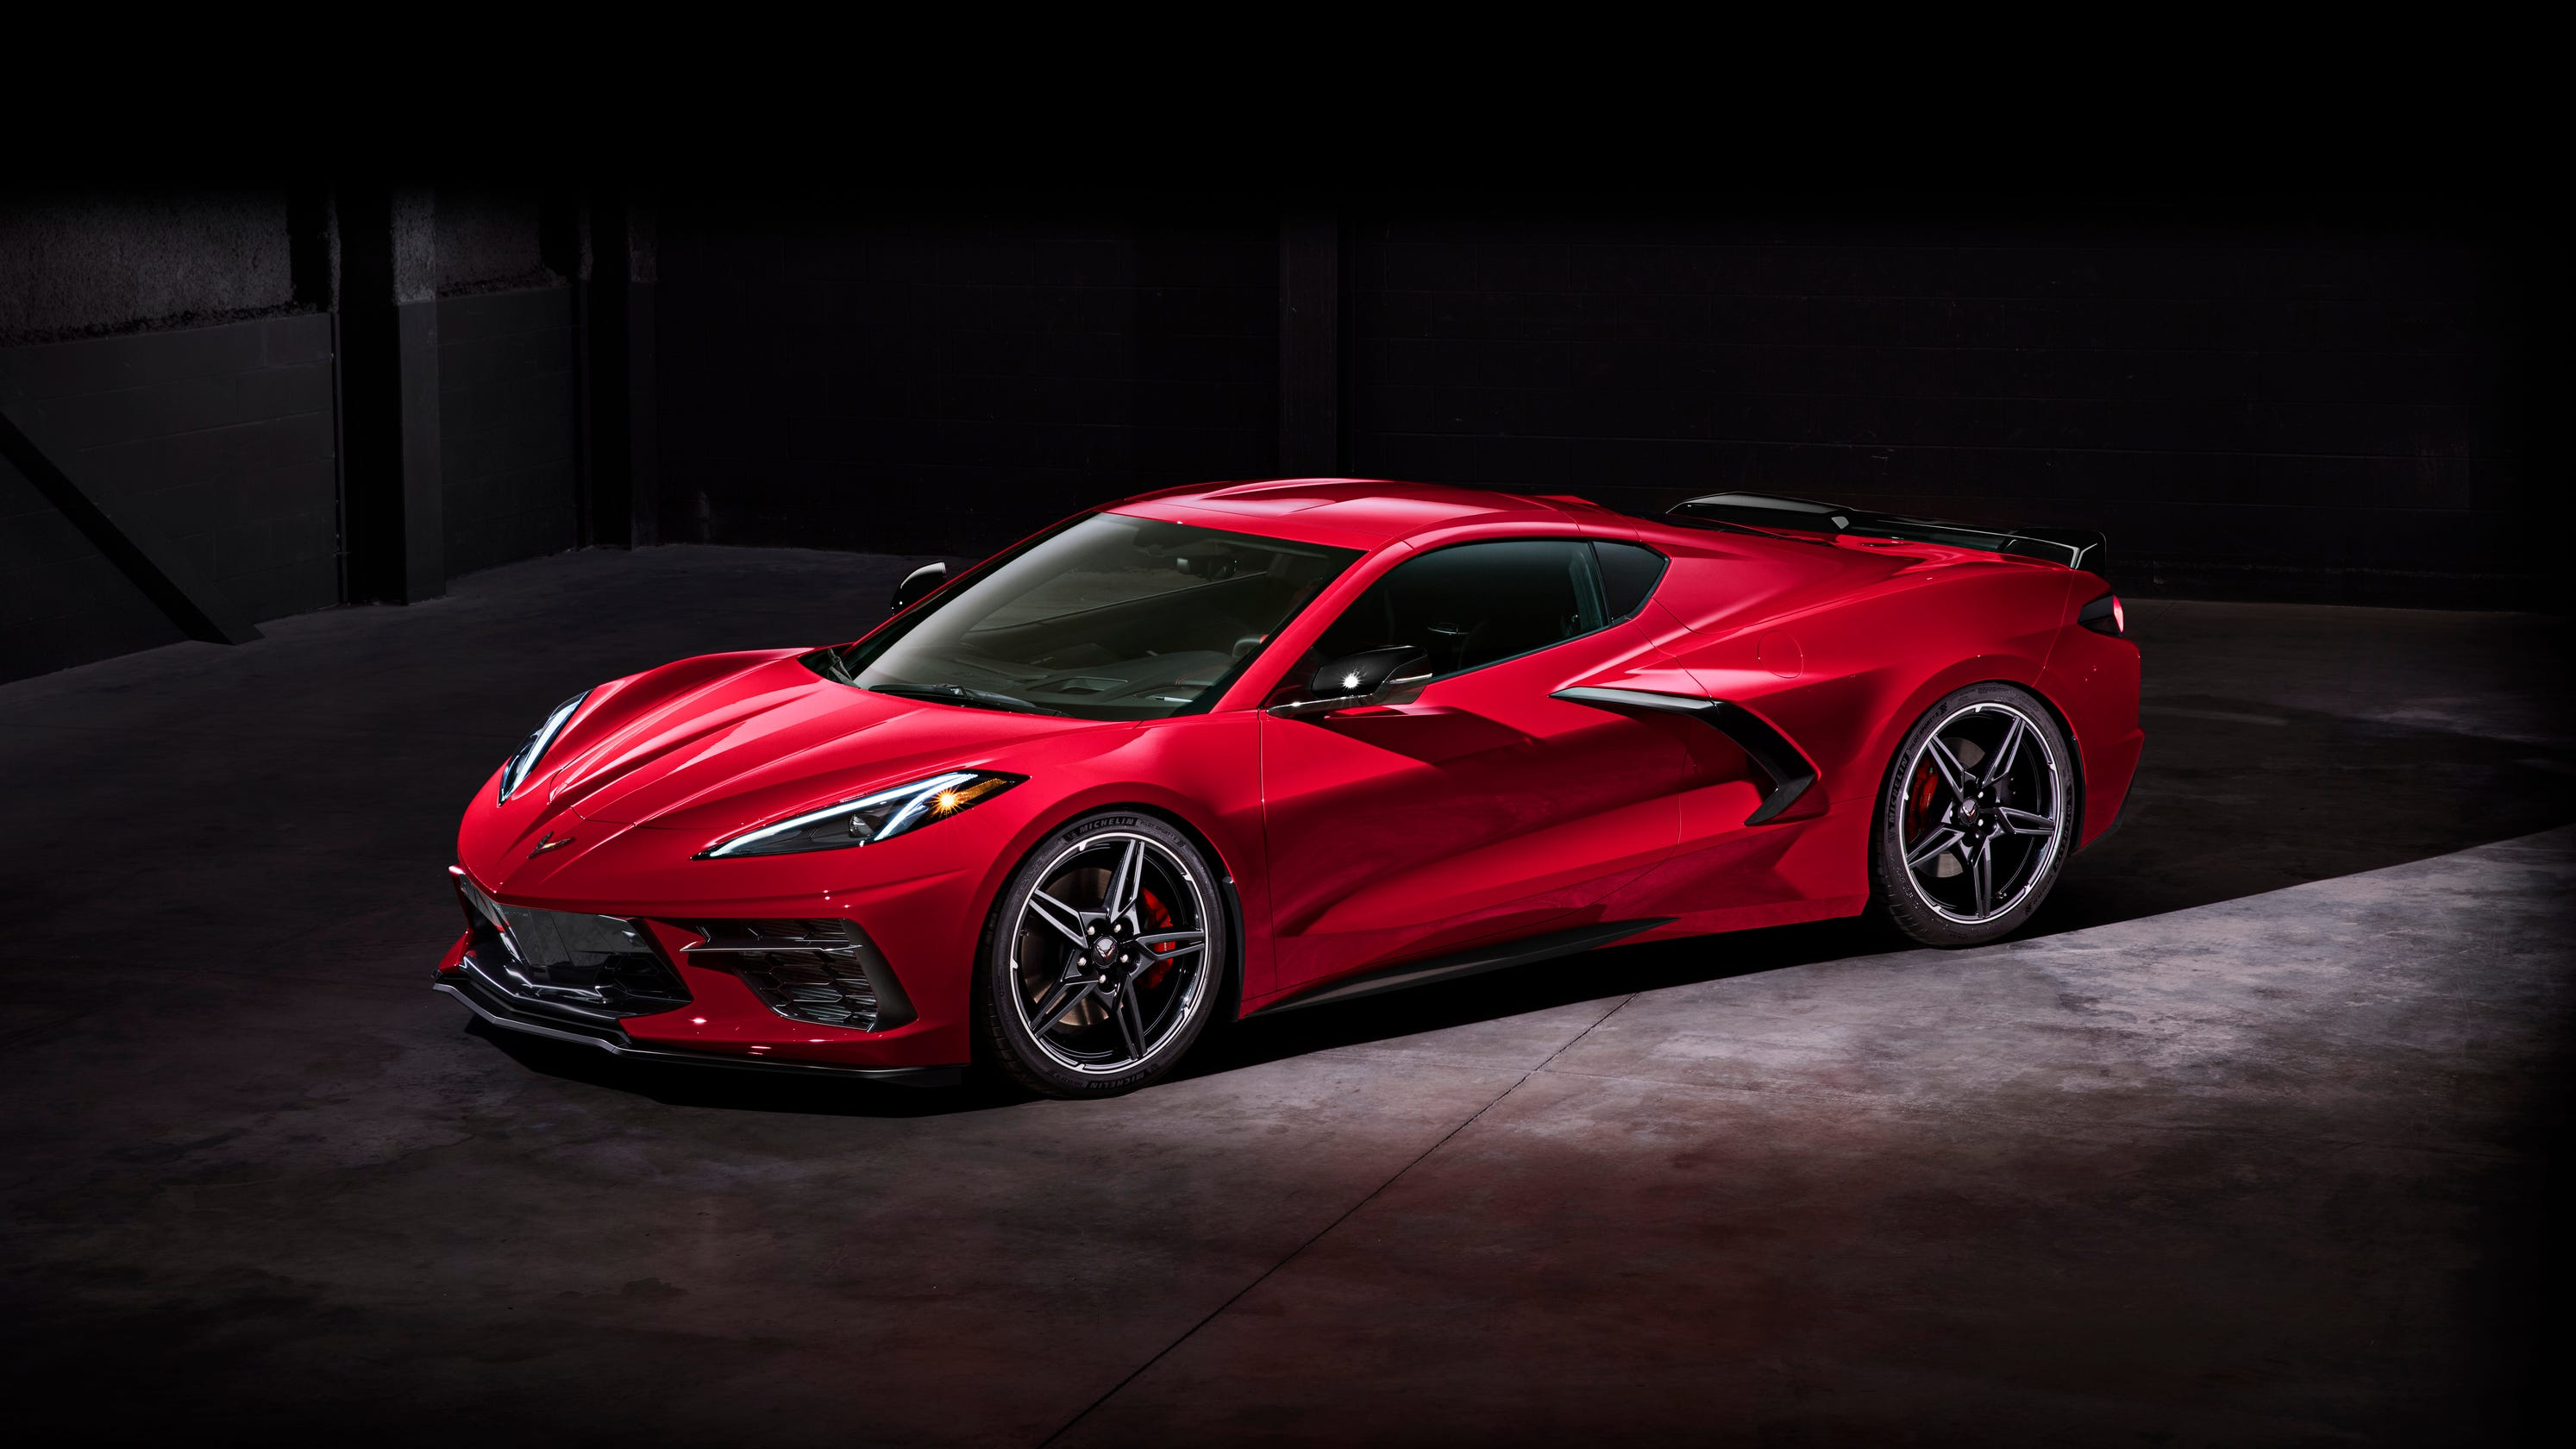 New Corvette Stingray >> 2020 Corvette C8 Chevrolet Breaks The Mold With Speed Sophistication